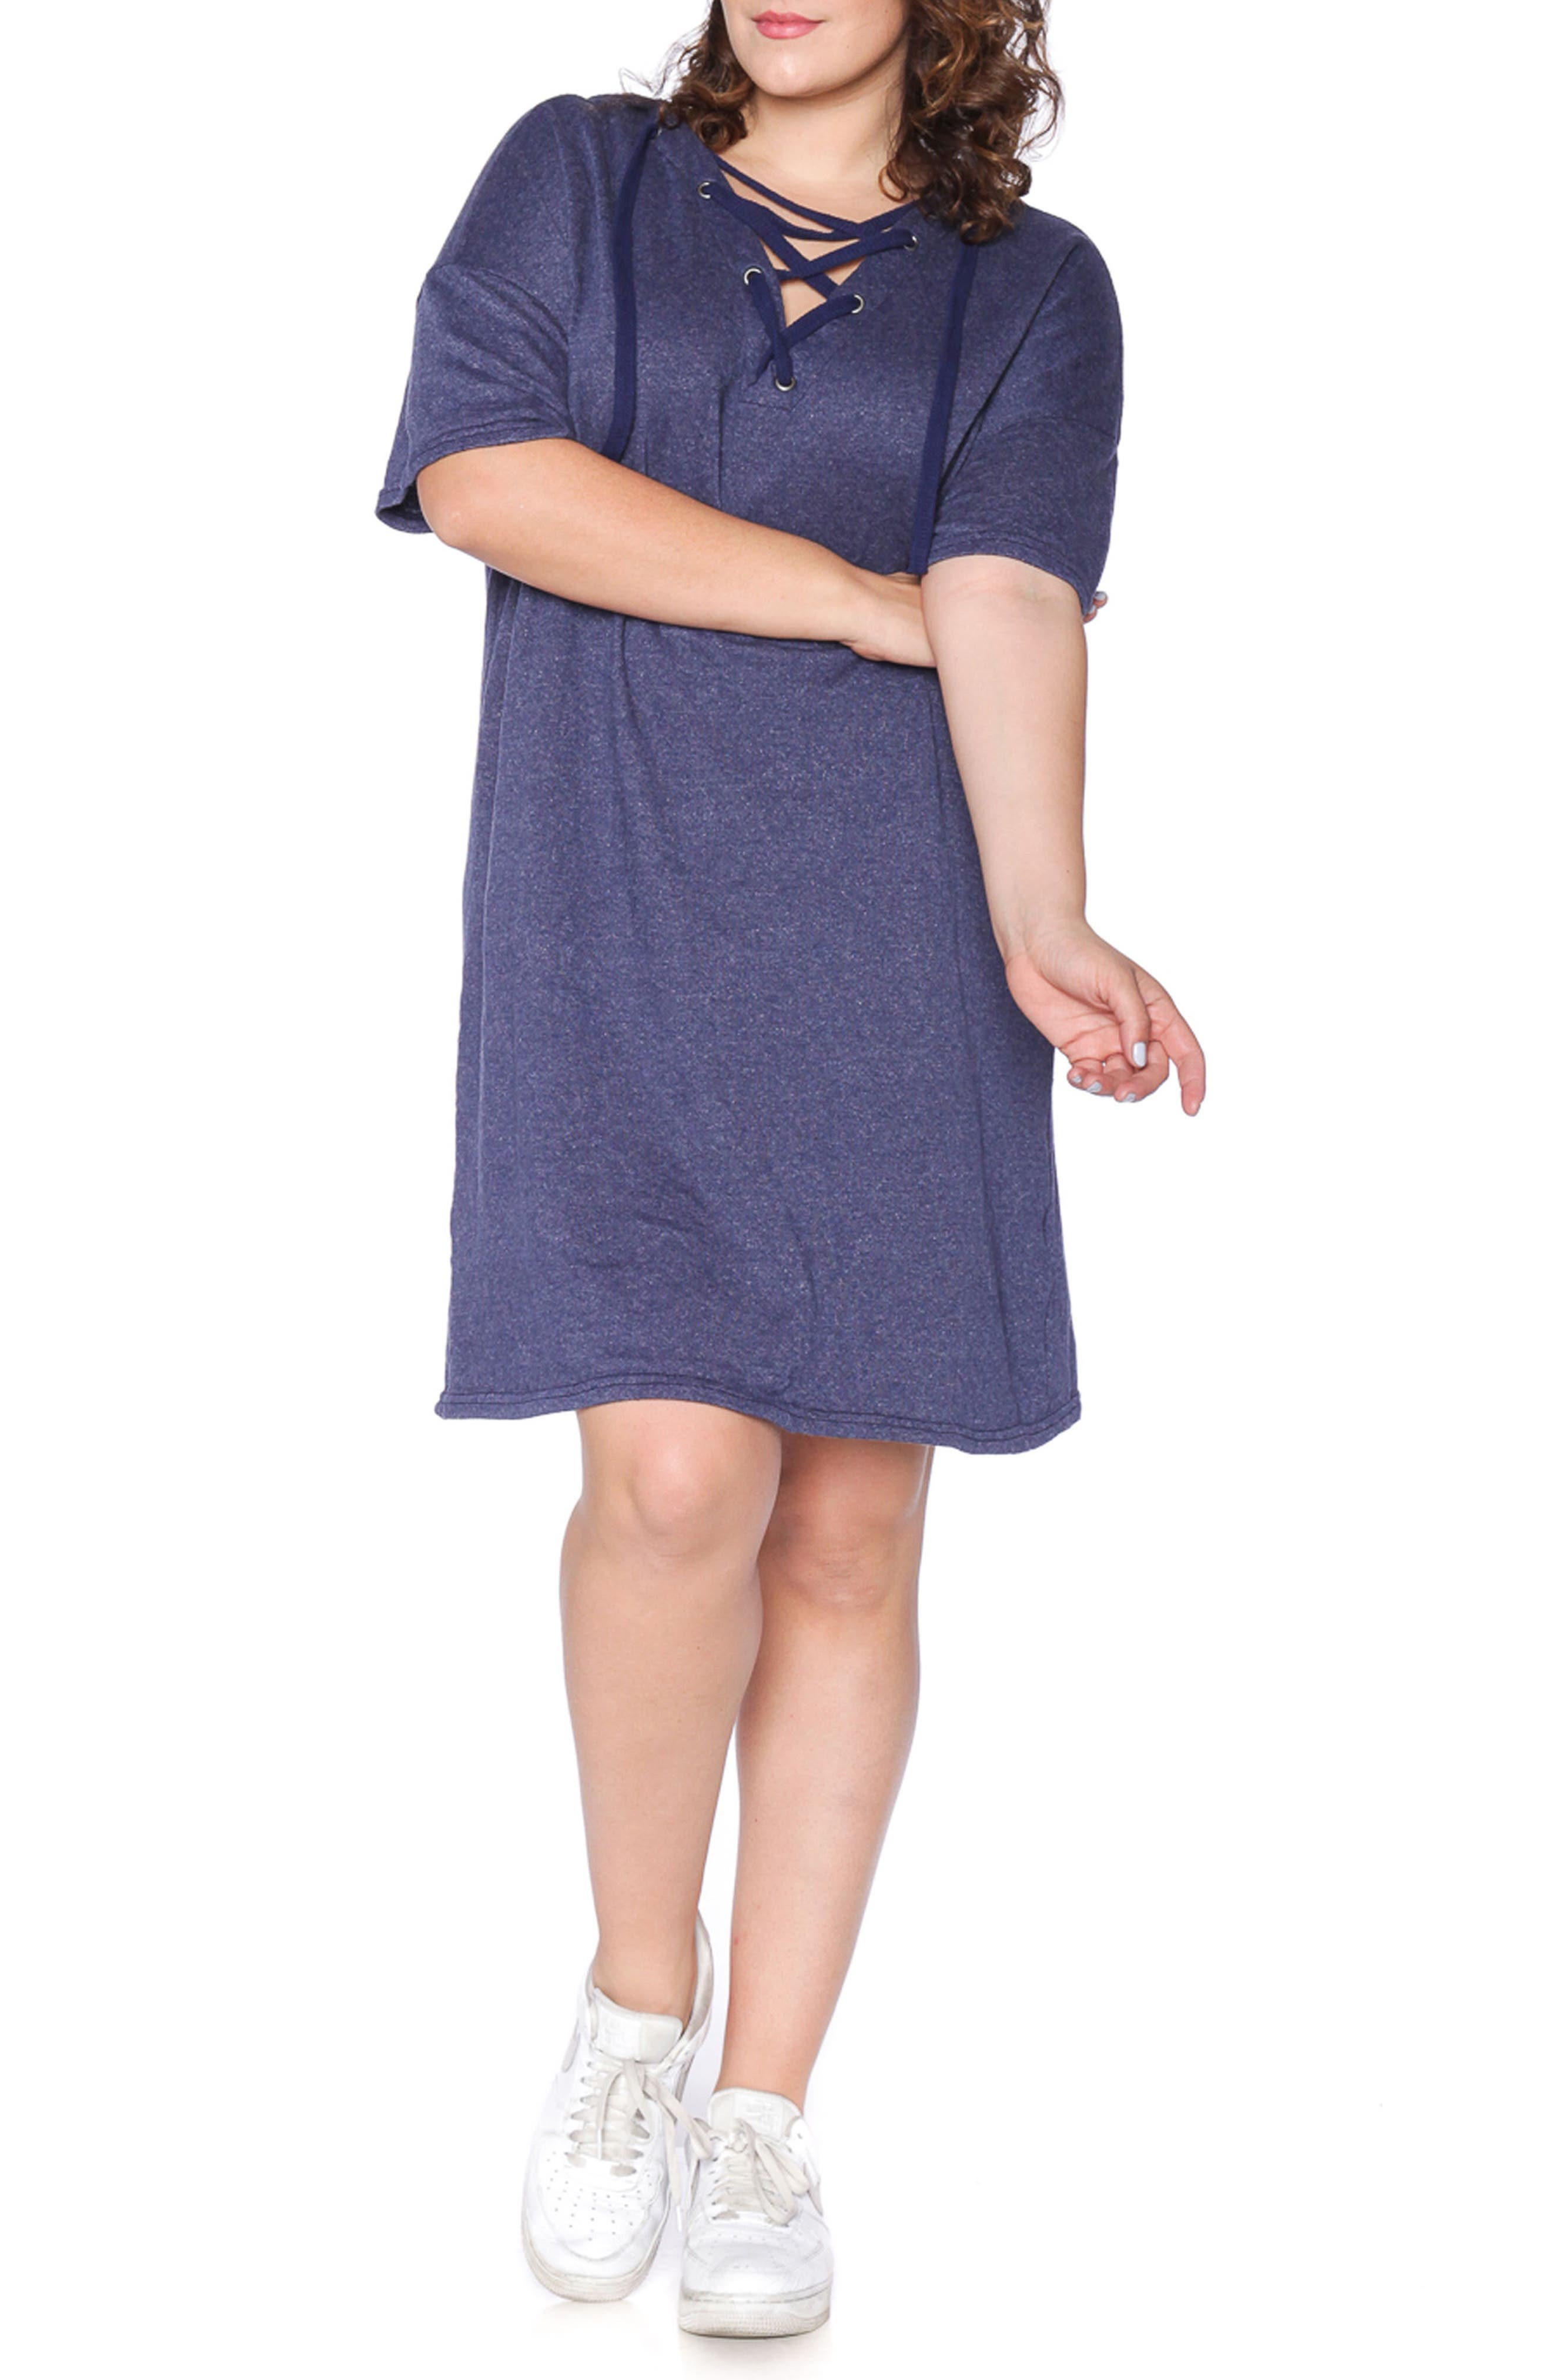 Main Image - SLINK Jeans Lace-Up Hoodie Dress (Plus Size)